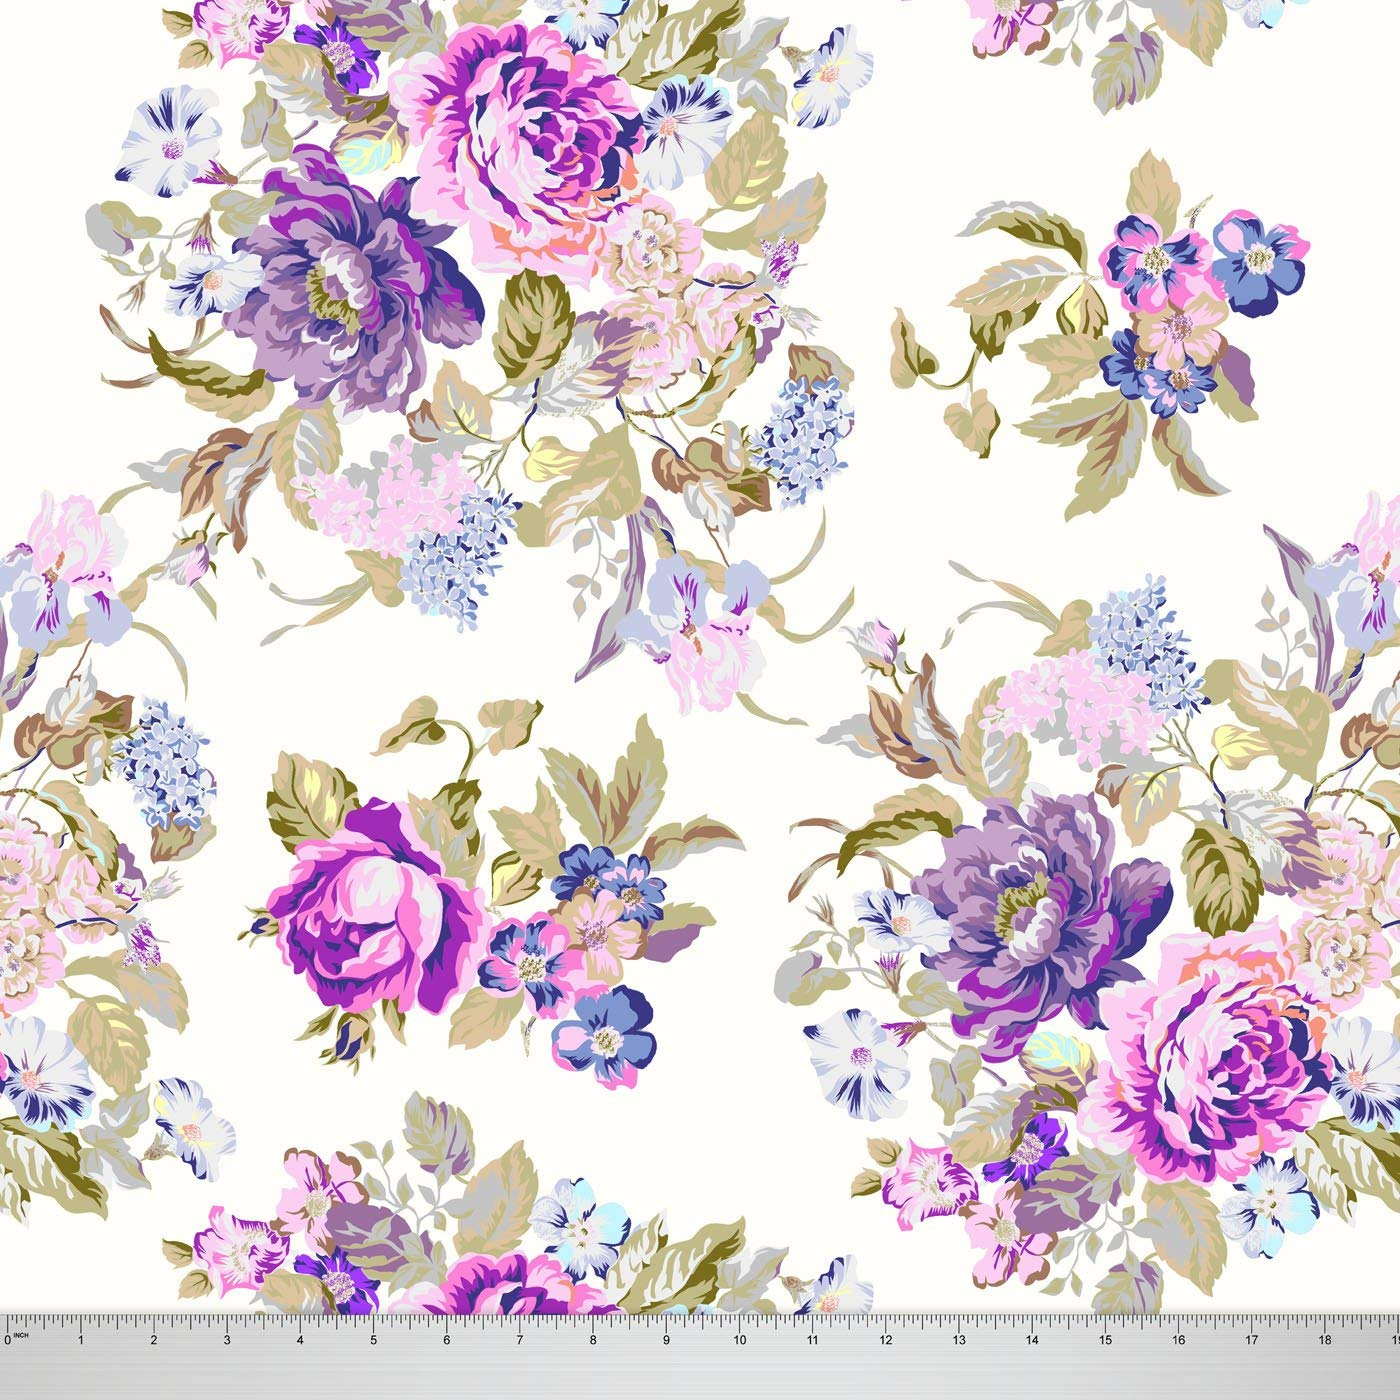 f2f6fba517c Soimoi 58 Inches Wide Floral Printed 115 GSM Viscose Rayon Fabric By The  Yard - Purple